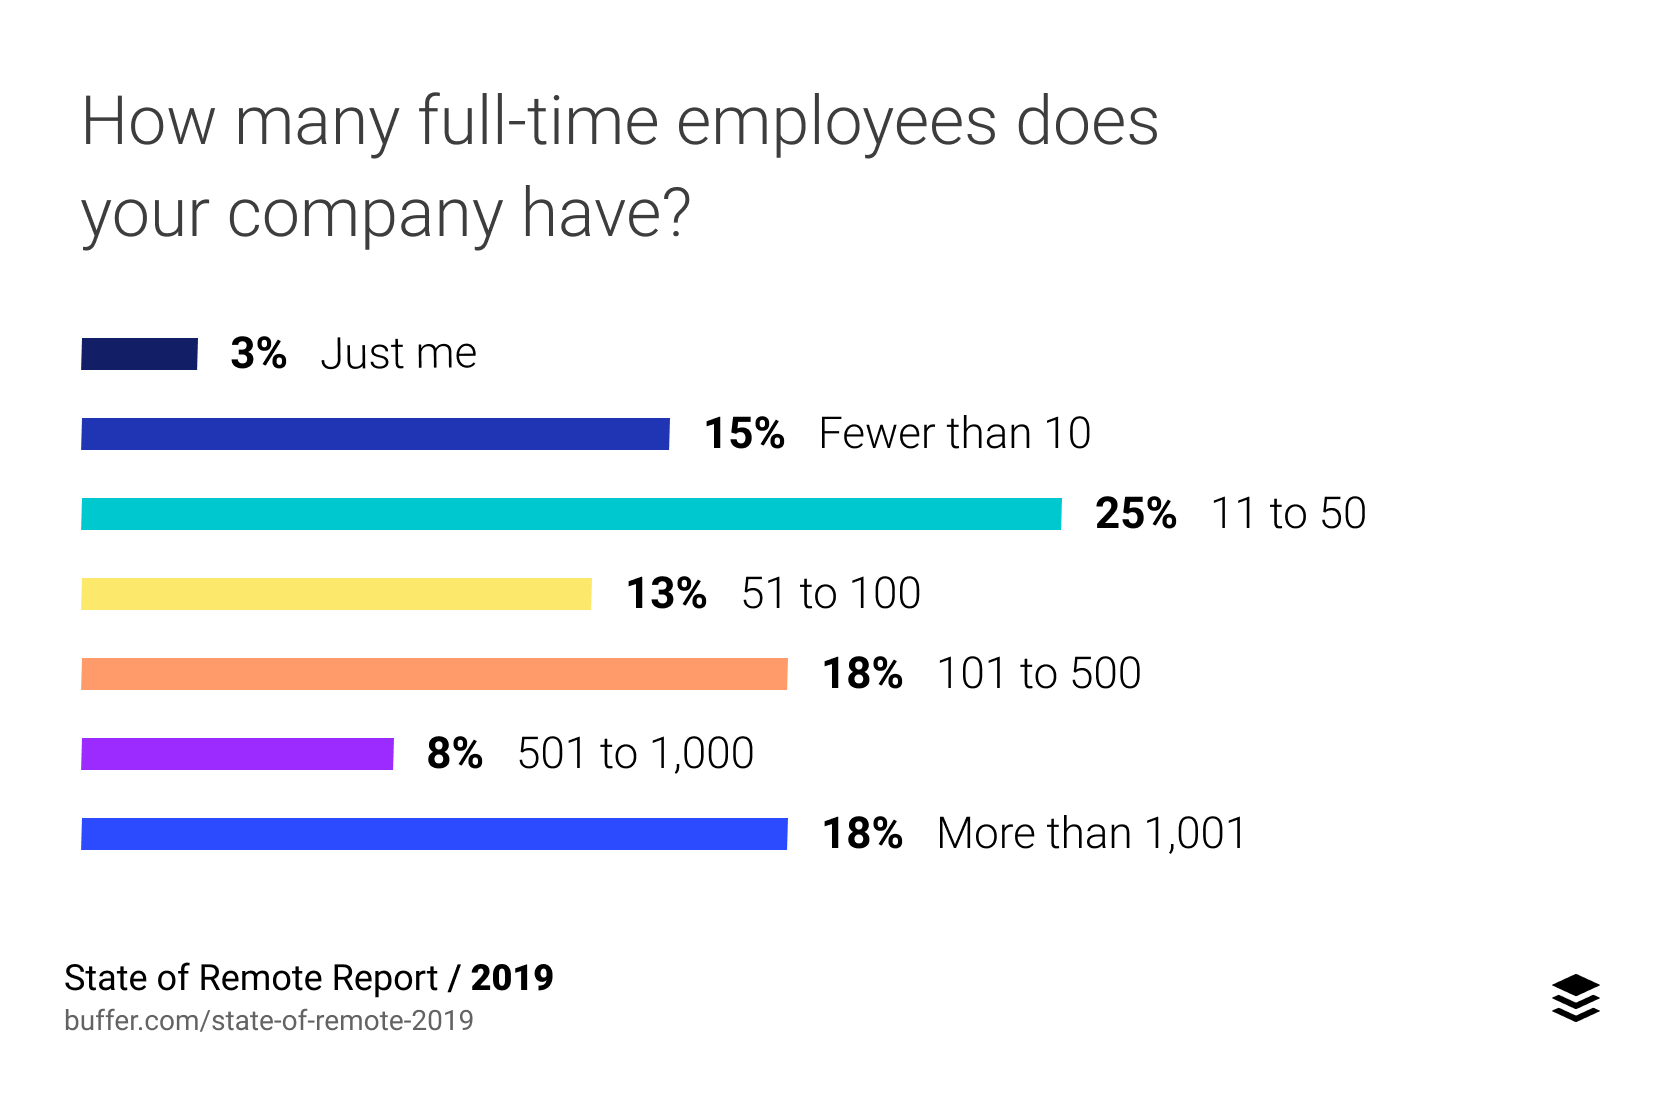 How many full-time employees does your company have?